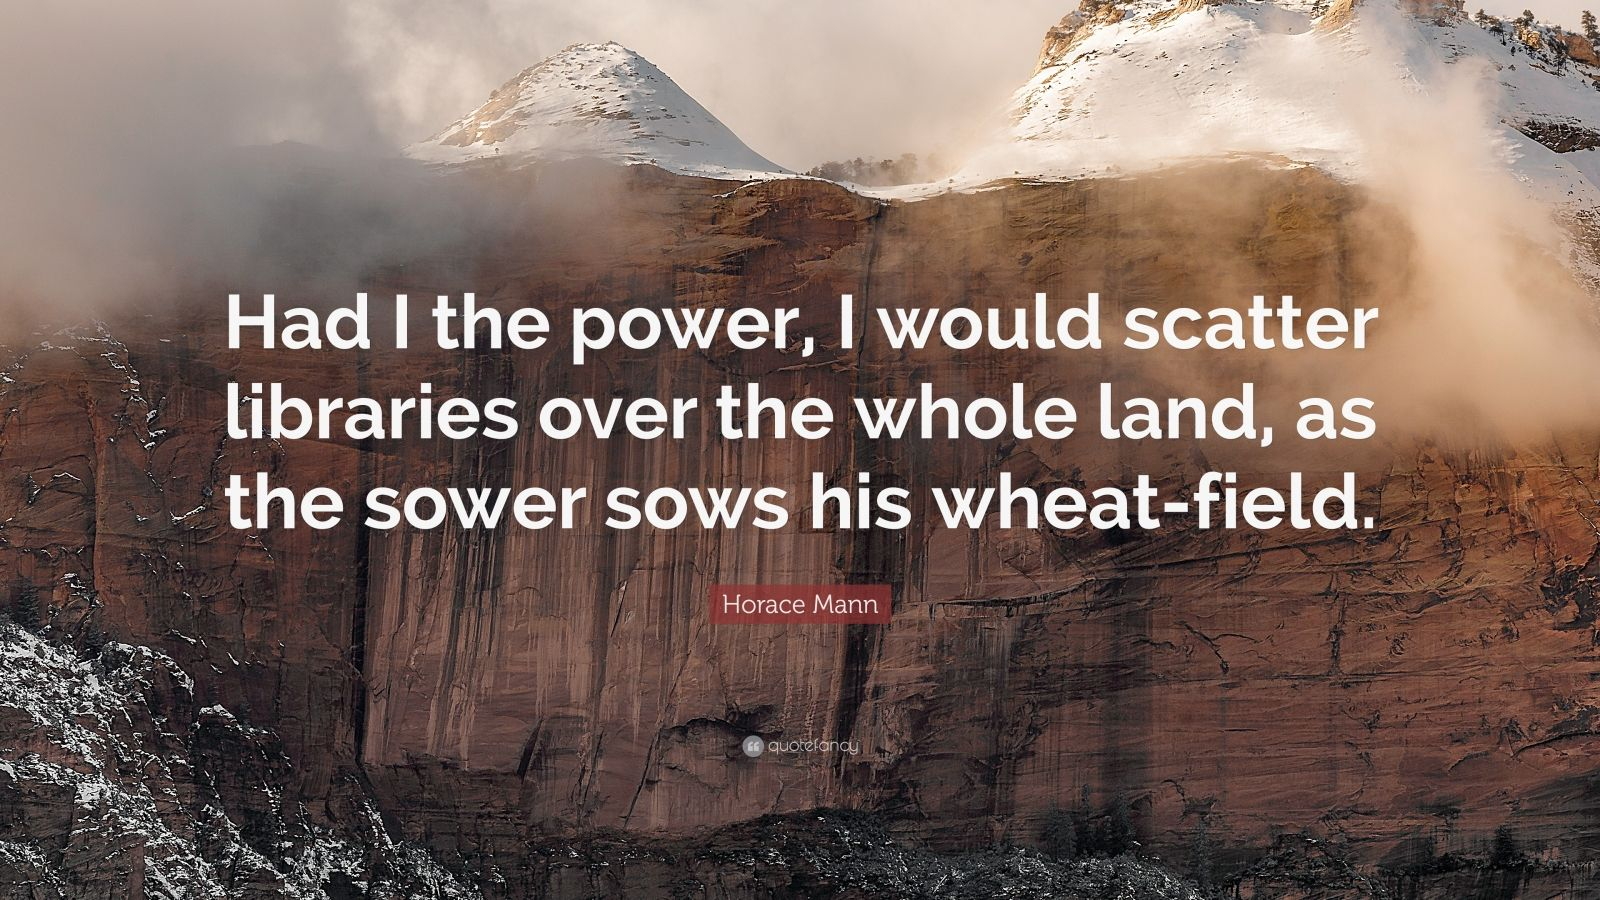 """Horace Mann Quote: """"Had I the power, I would scatter libraries over the whole land, as the sower sows his wheat-field."""""""